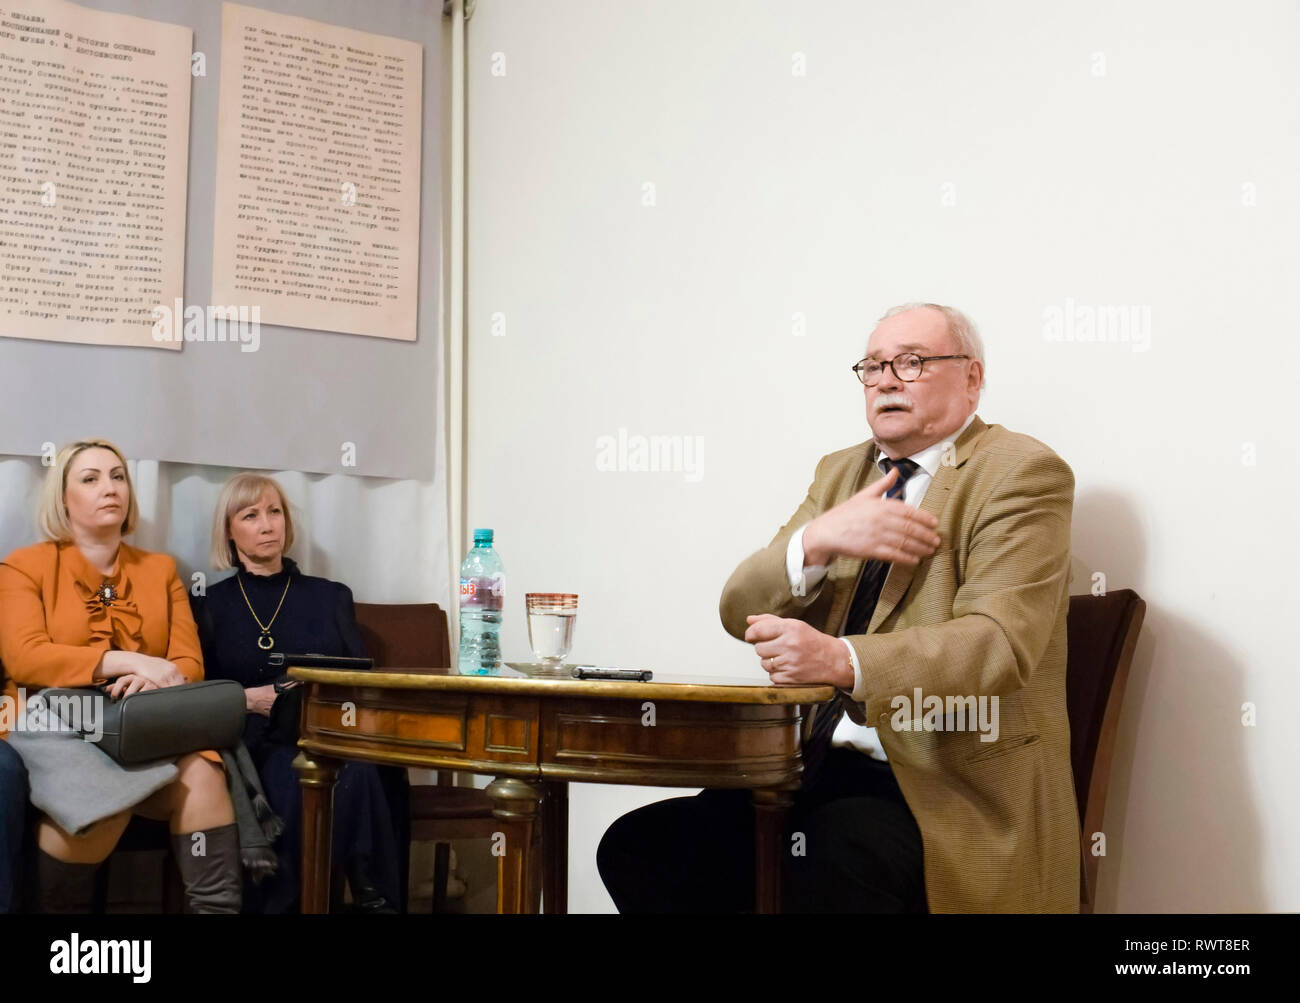 Lecture of the Russian film director Vladimir Bortko in the Dostoevsky Museum in Moscow - Stock Image